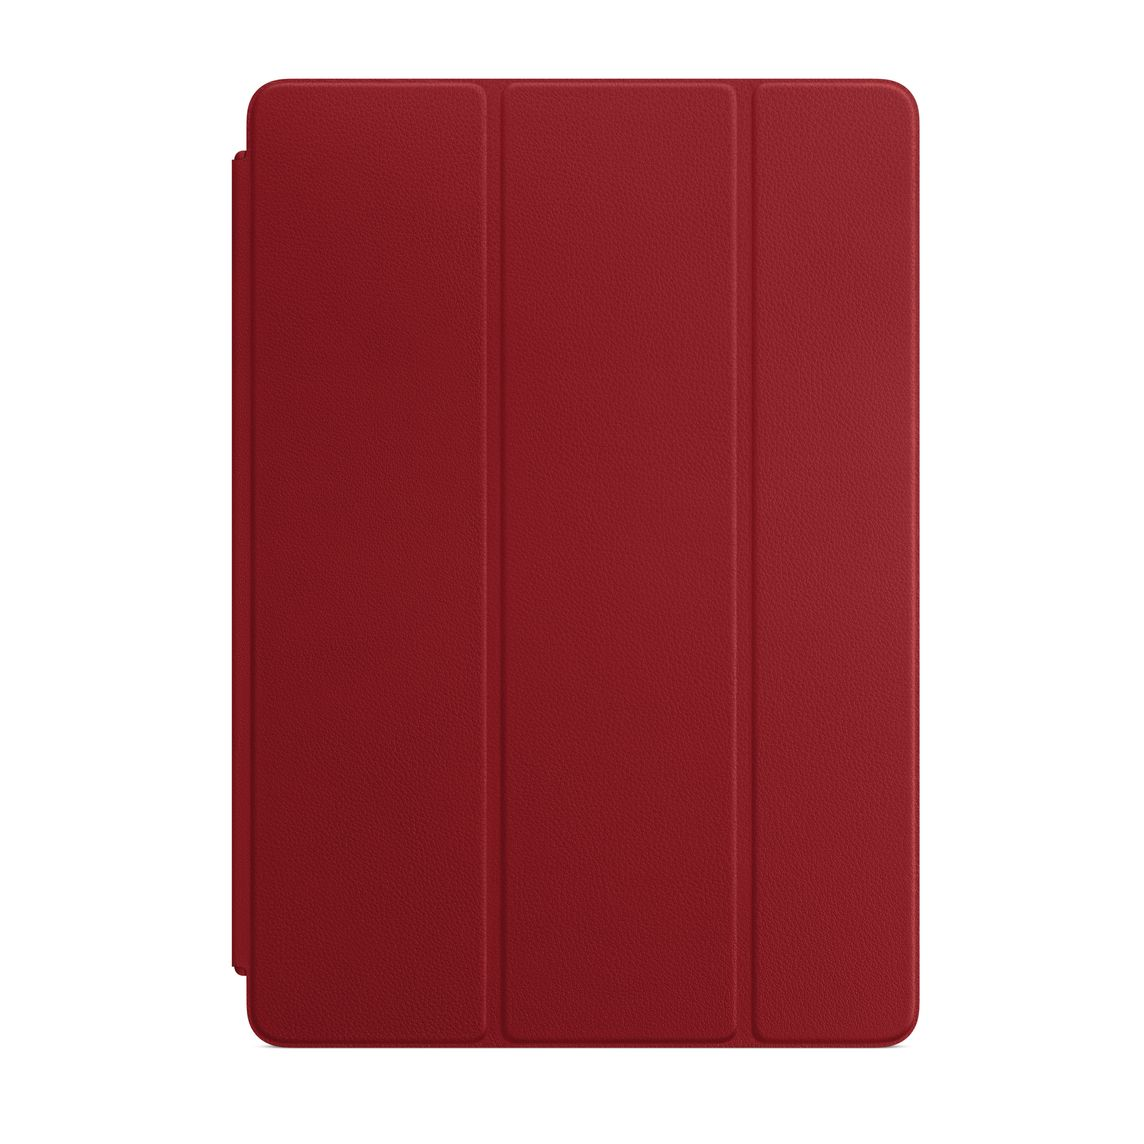 sports shoes a590d c0429 Leather Smart Cover for 10.5-inch iPad Air - (PRODUCT)RED